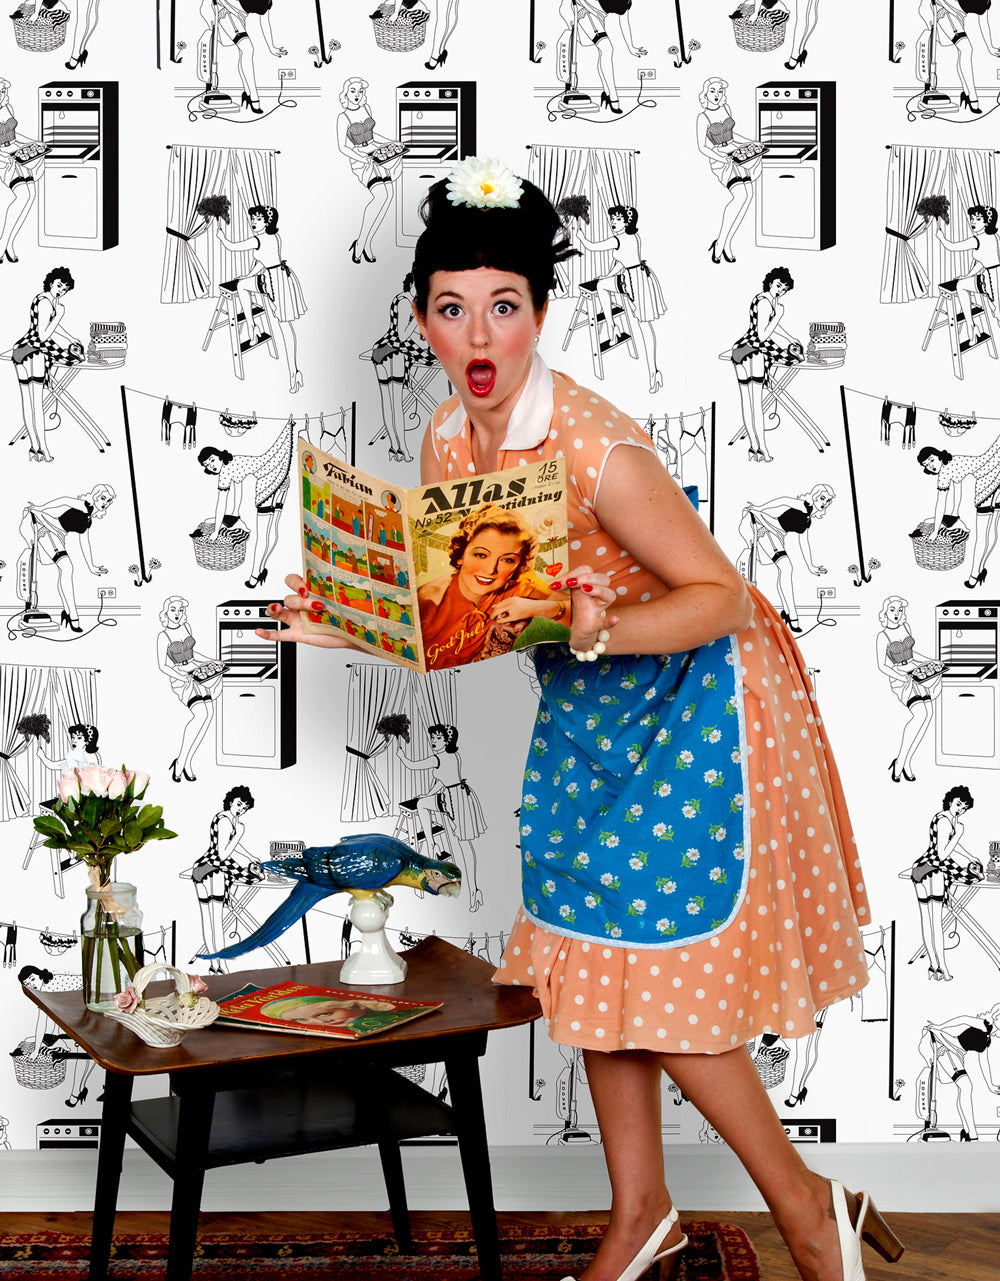 50s Housewives - Wallpaper